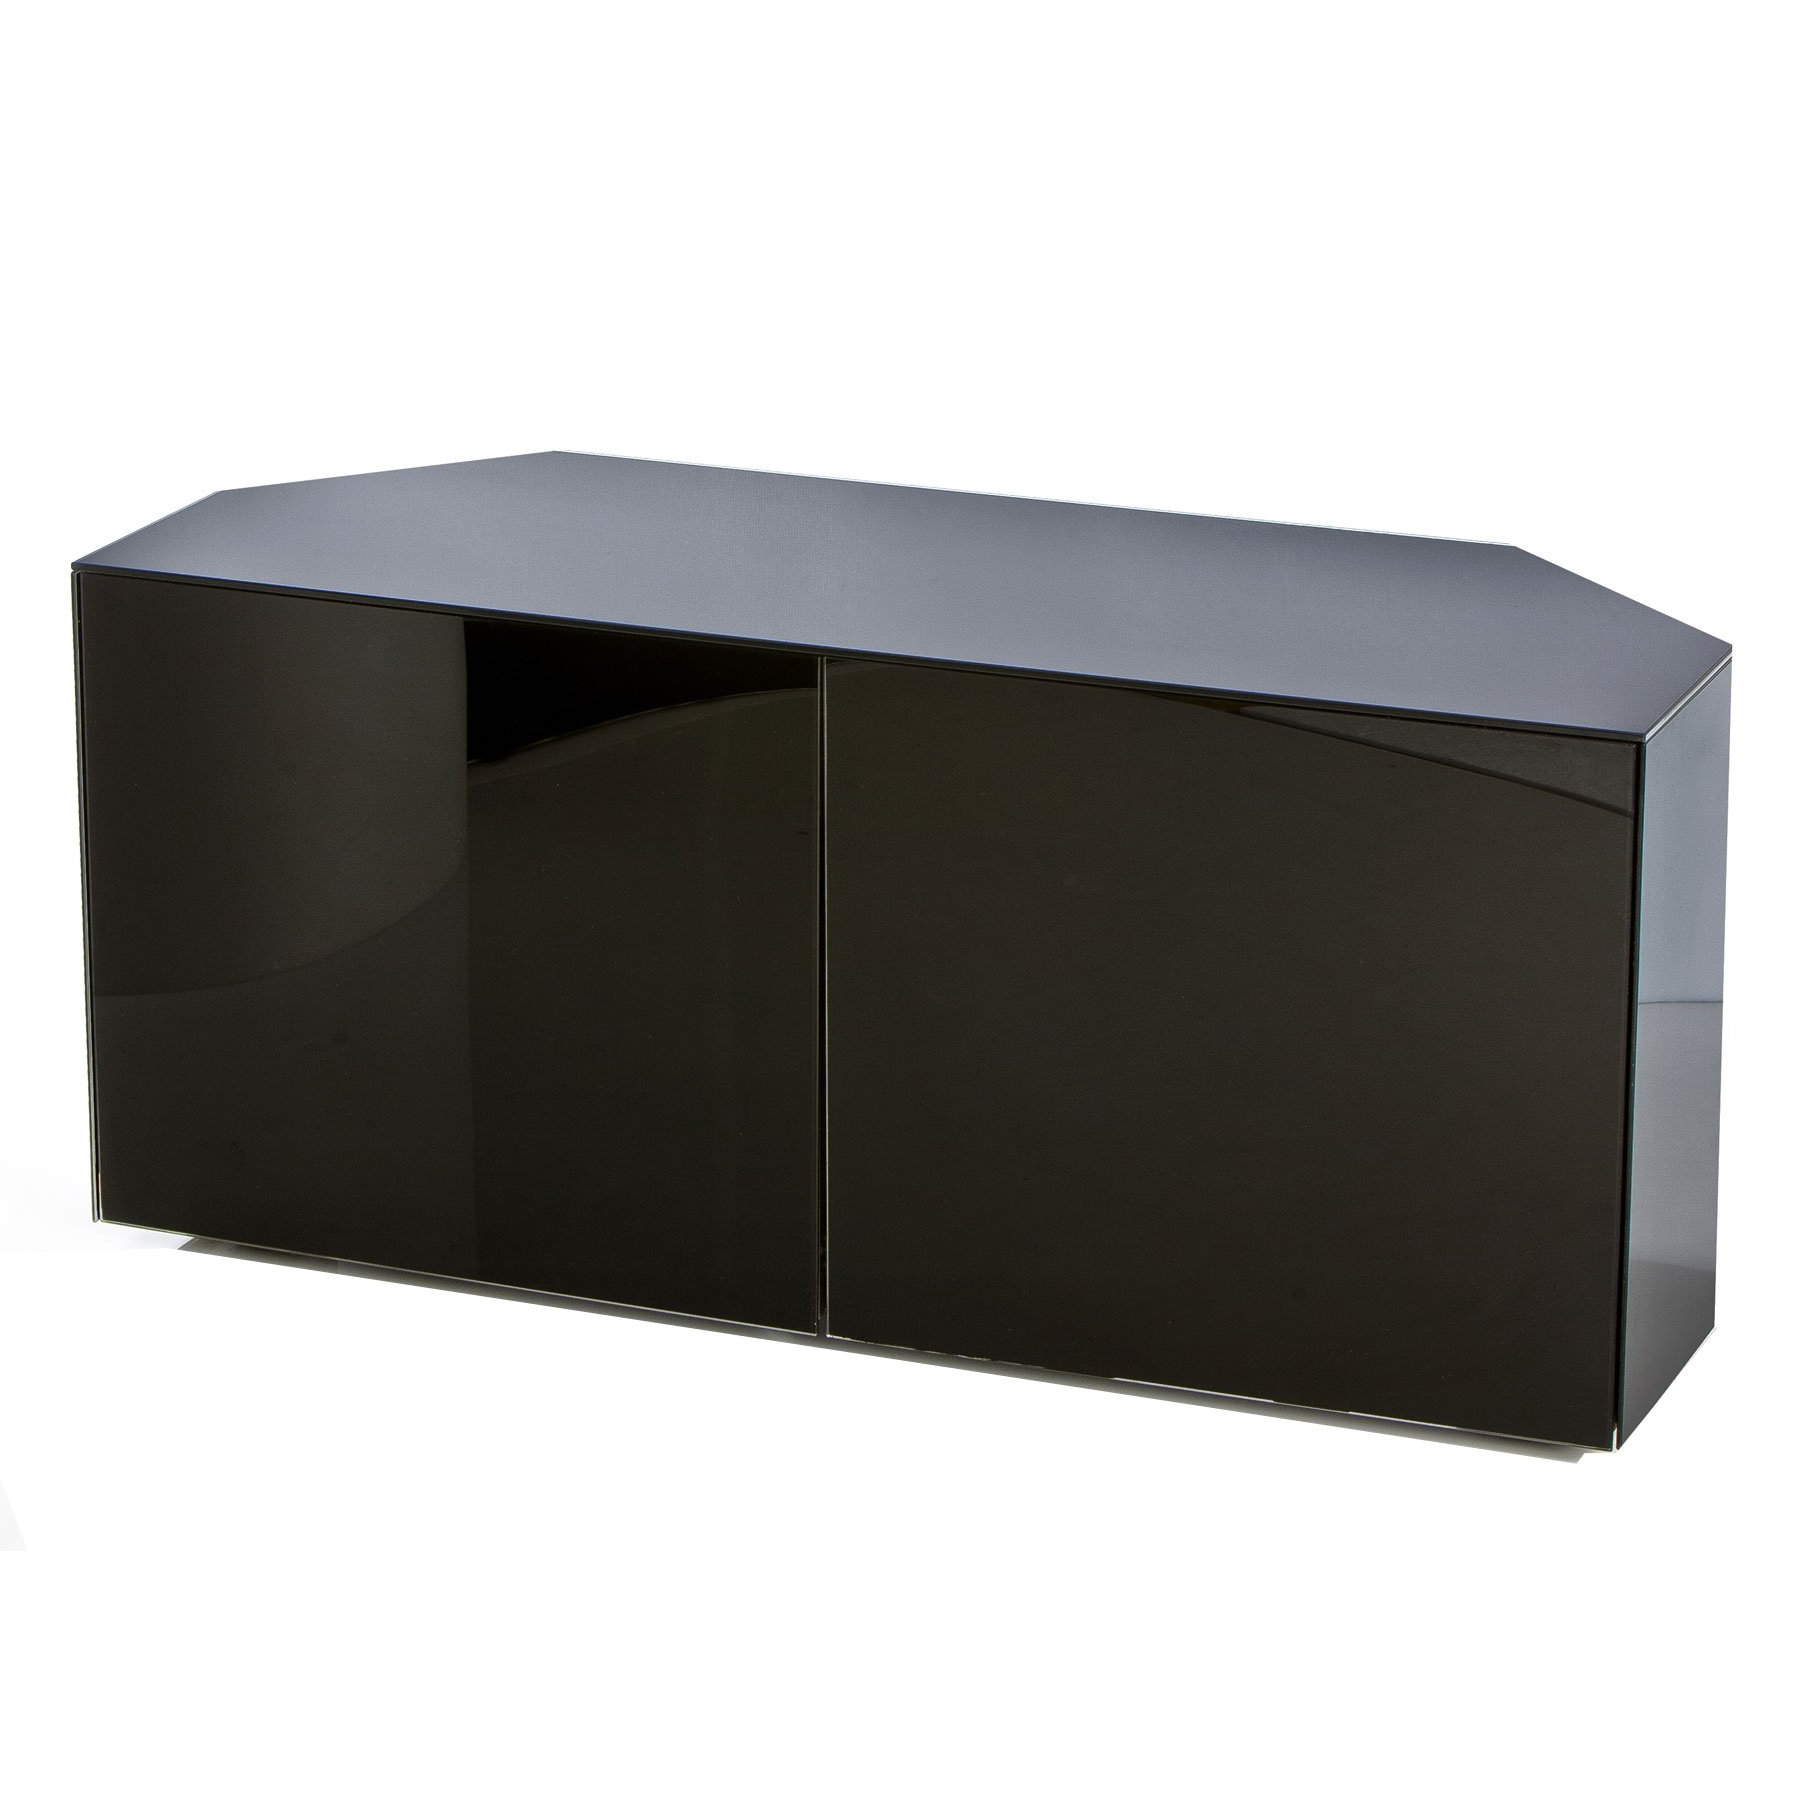 """Invictus Black High Gloss Corner Tv Stand For Up To 55"""" Tvs With Corner Tv Stands For Tvs Up To 43"""" Black (View 11 of 20)"""